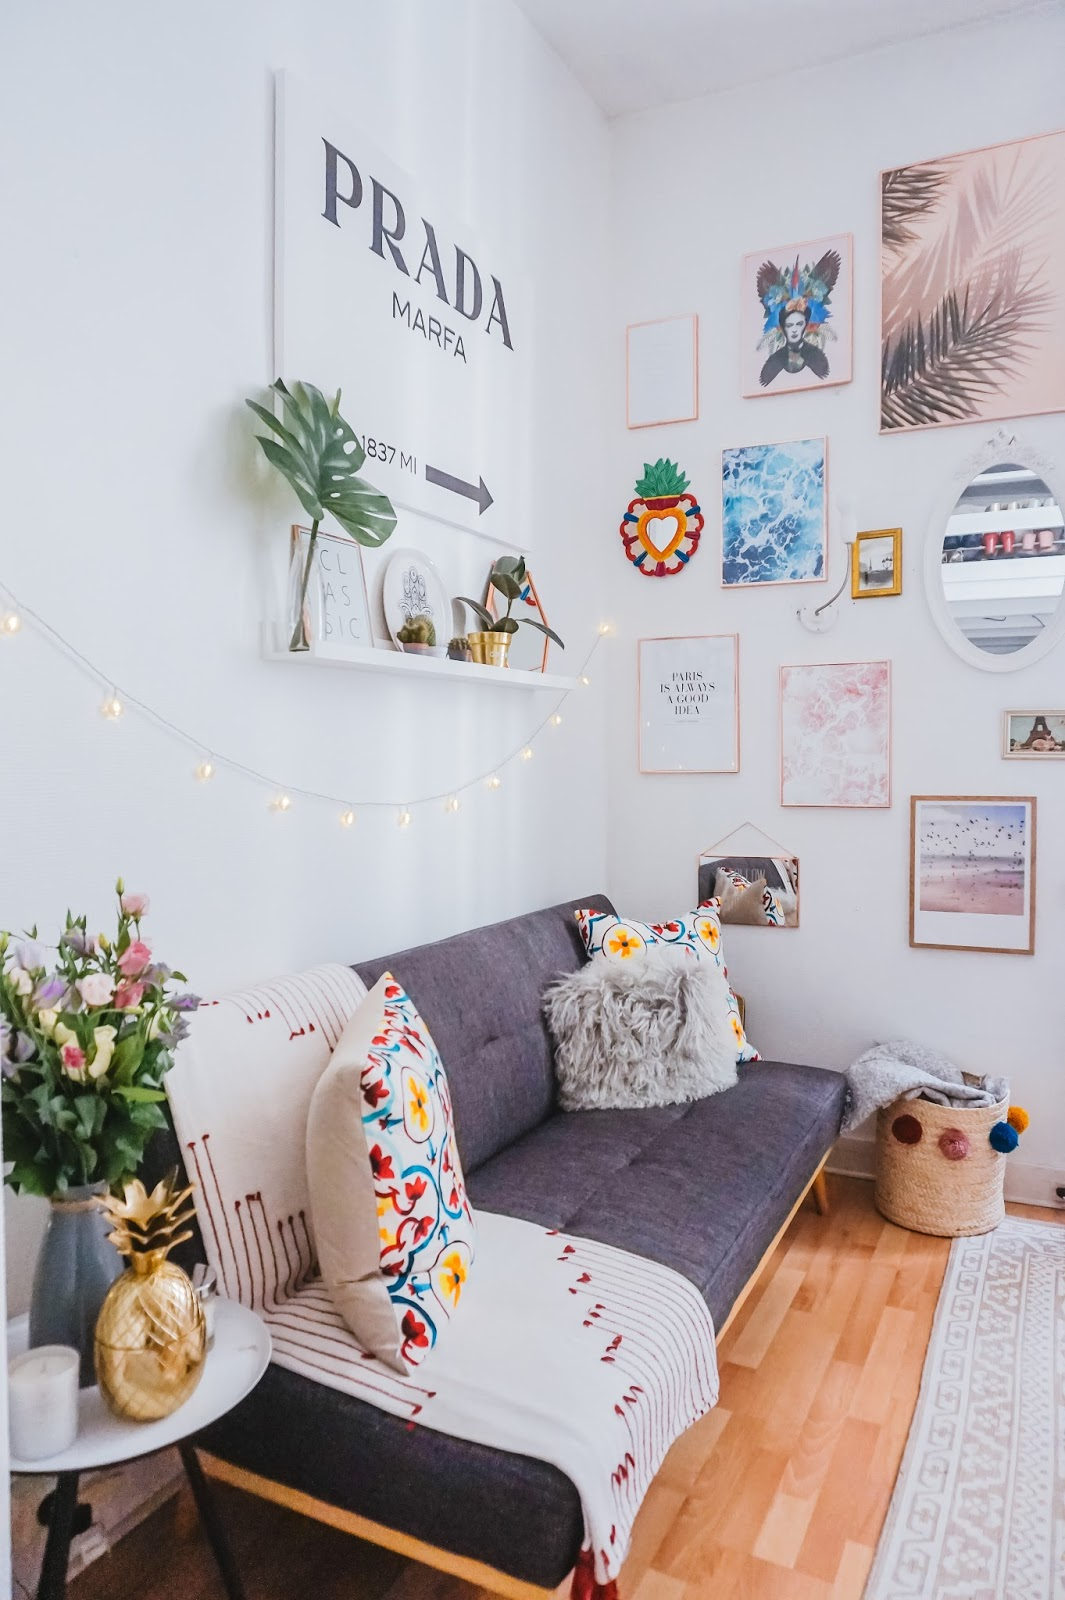 metmeinparee-parisapapartments-paris-smallapartments-decorinspo